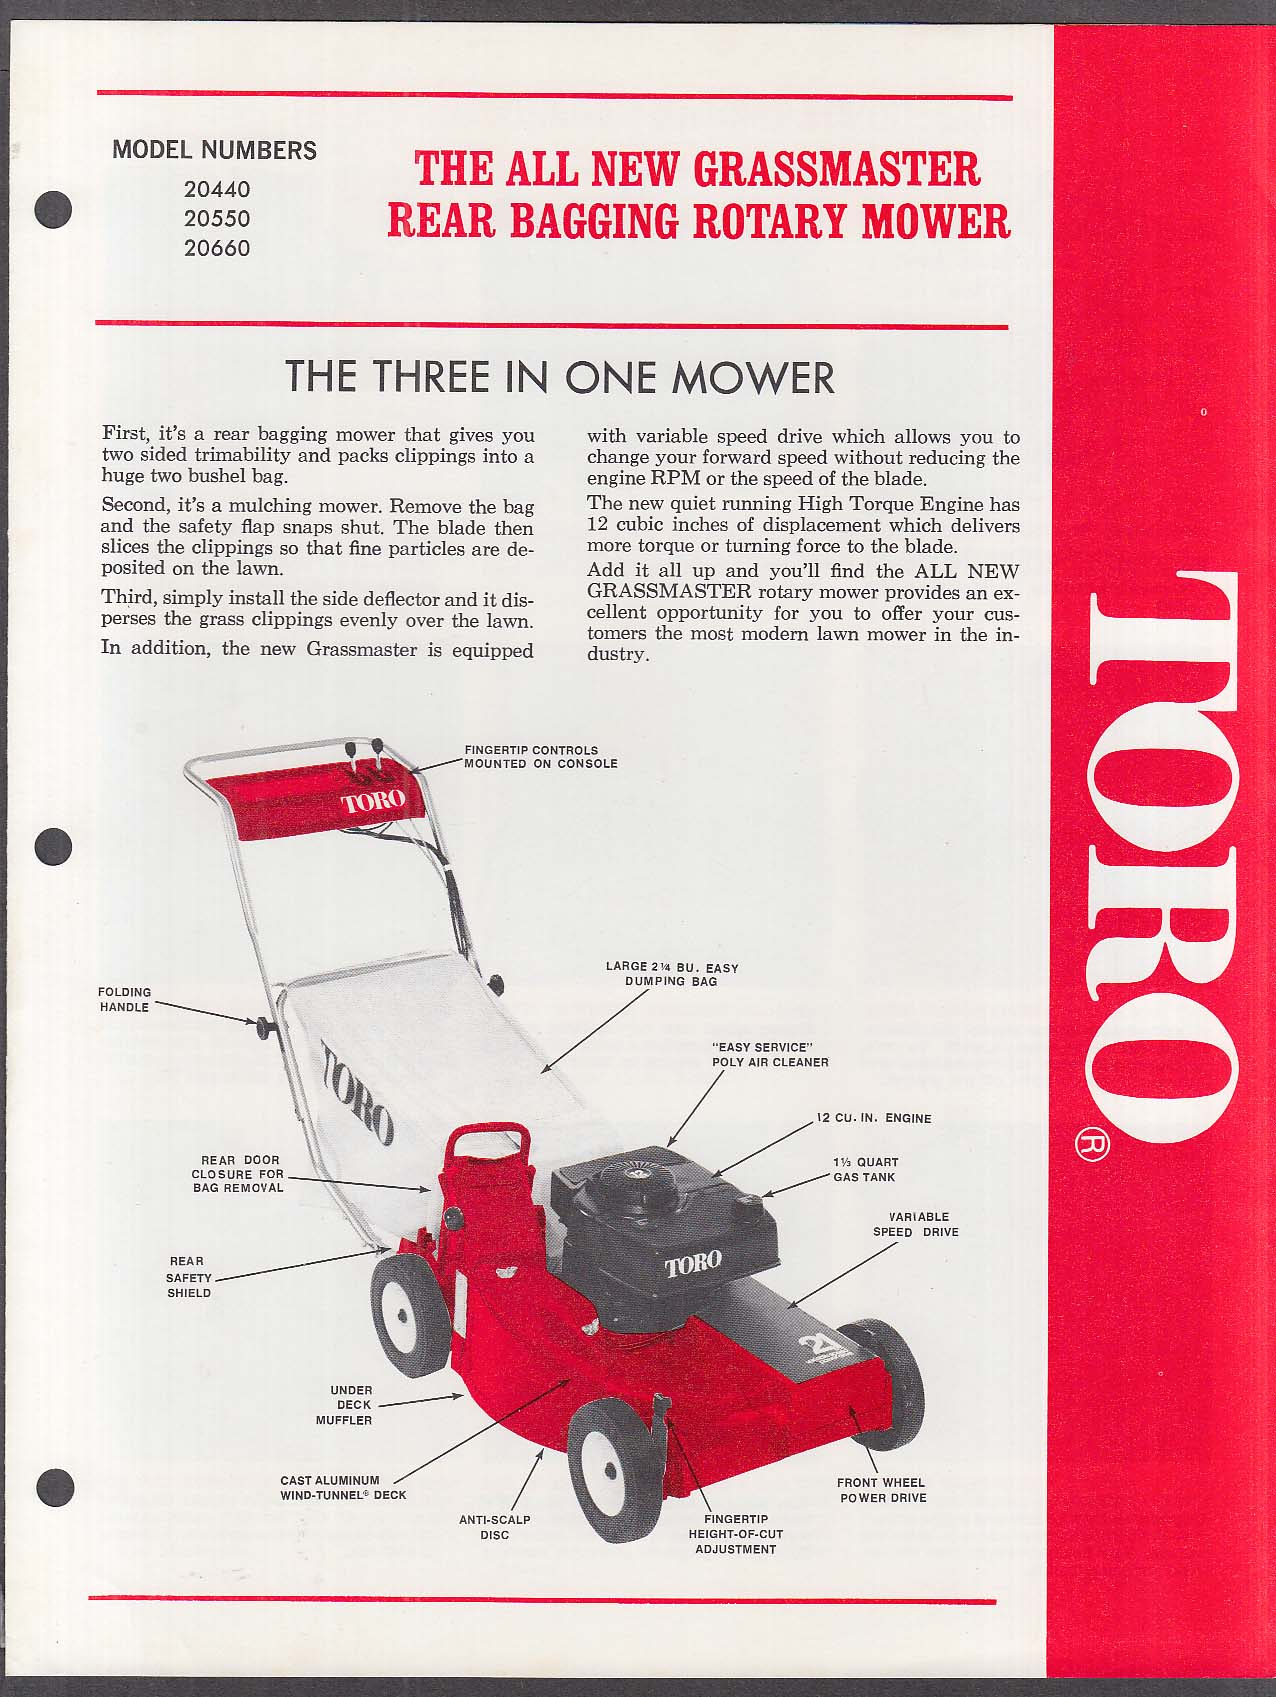 Toro Grassmaster Rotary Mower catalog folder 1974